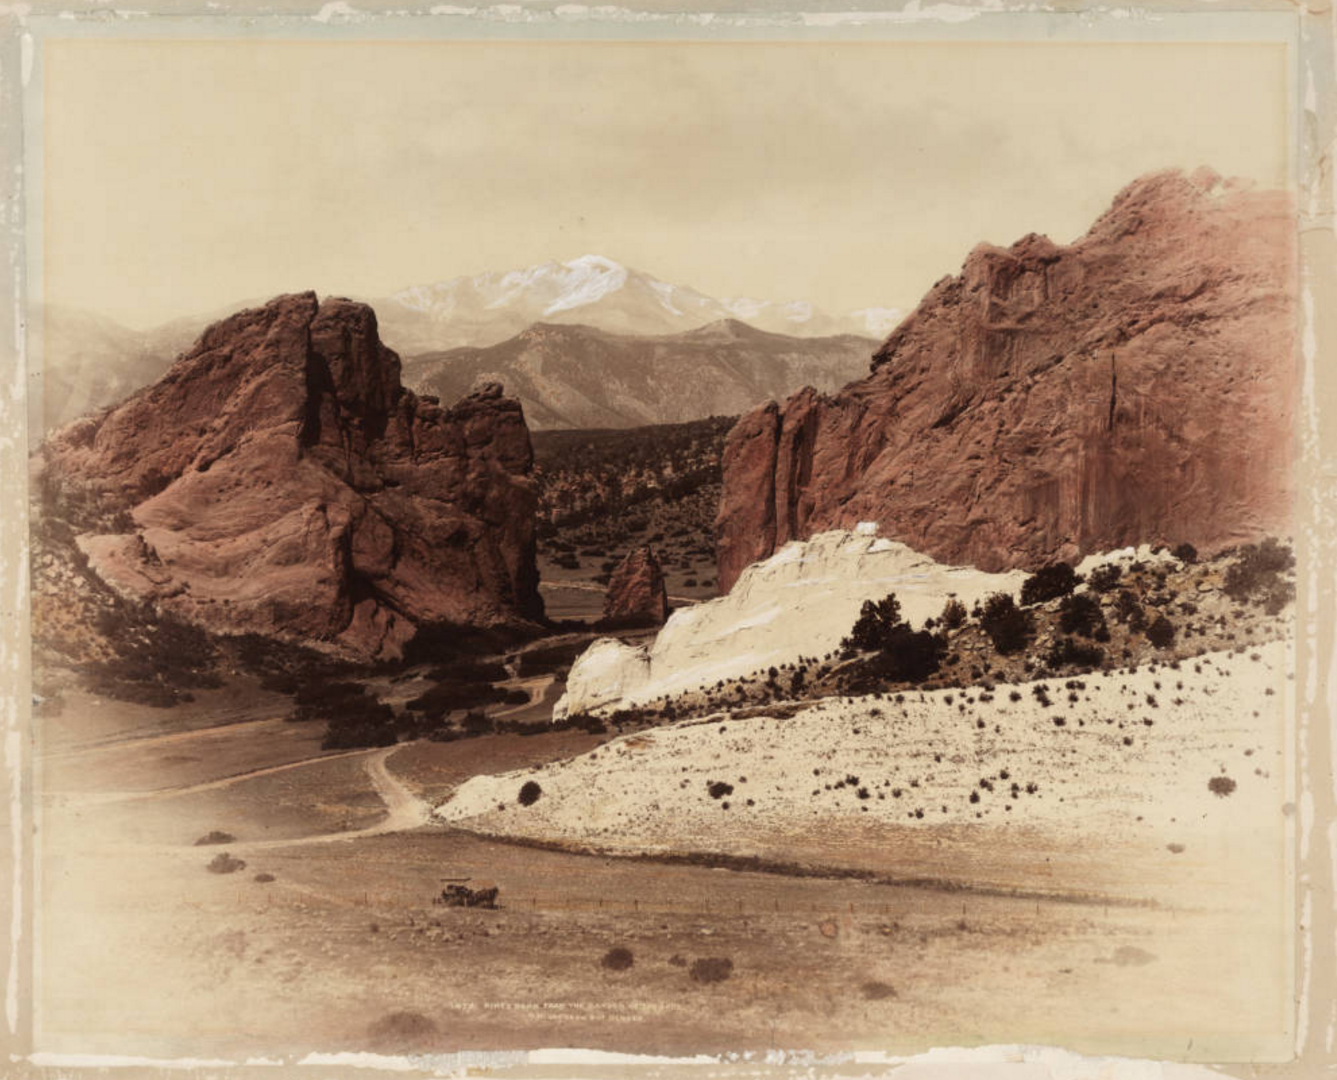 Imagsandstone rock formations and Gate Rock, a pillar at Garden of the Gods in Colorado Springs  Photo courtesy of  Western History and Genealogy Dept., Denver Public Library  William Henry Jackson Collection.e title